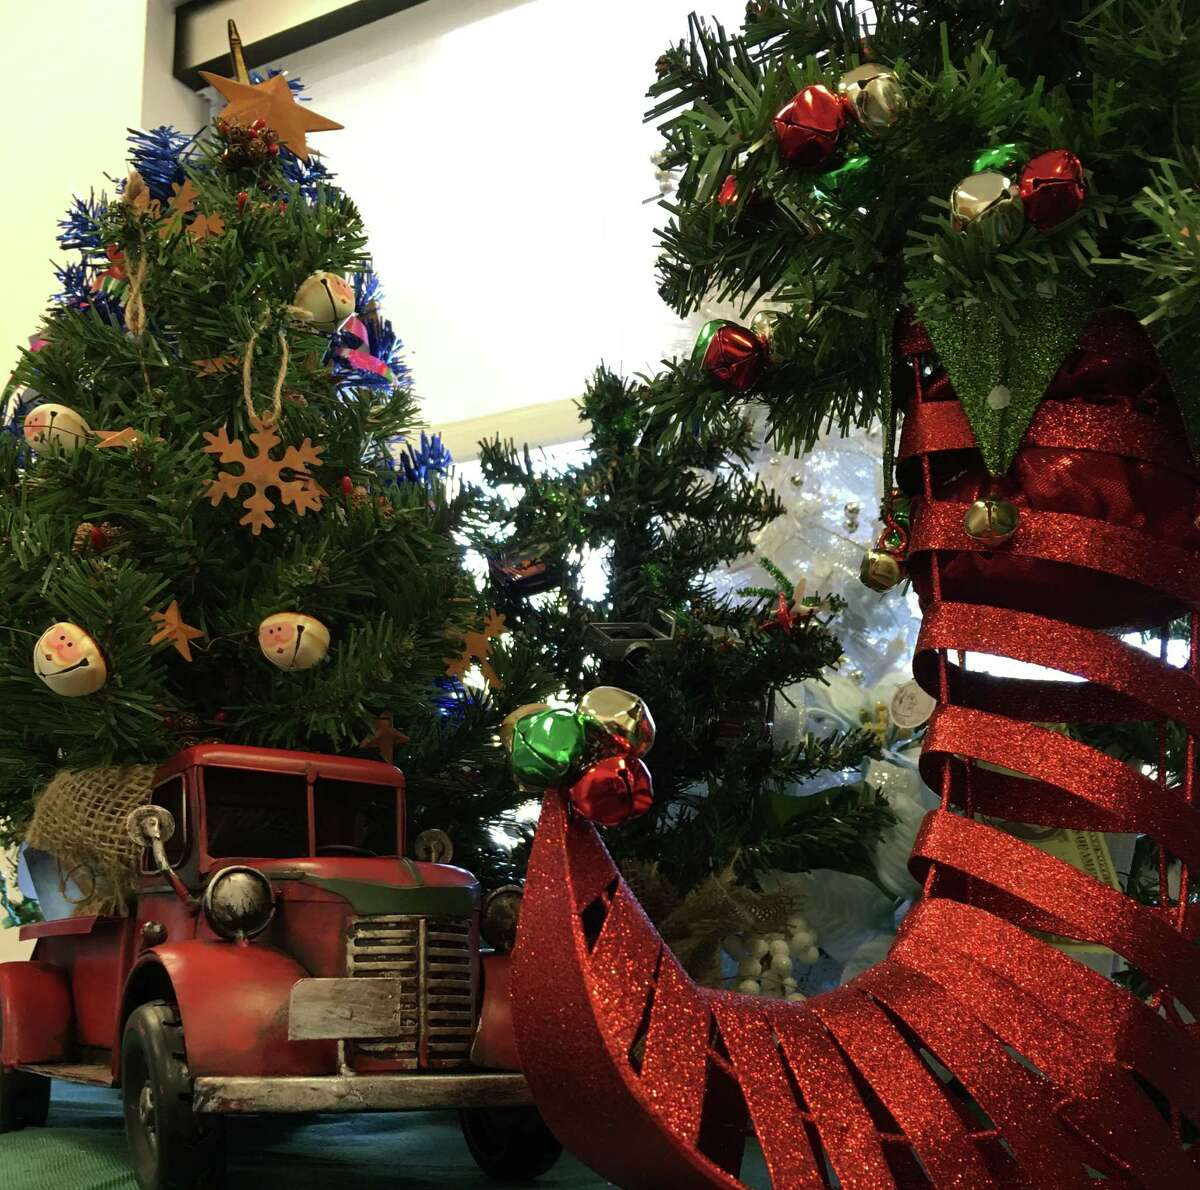 Two of the winning trees from the 2015 Hope Forest tree decorating contest sit side by side at TriCare Hospice in Kingwood. TriCare Hospice invites the community to participate in the 2016 Hope Forest occurring from Nov. 30 through Dec. 6.